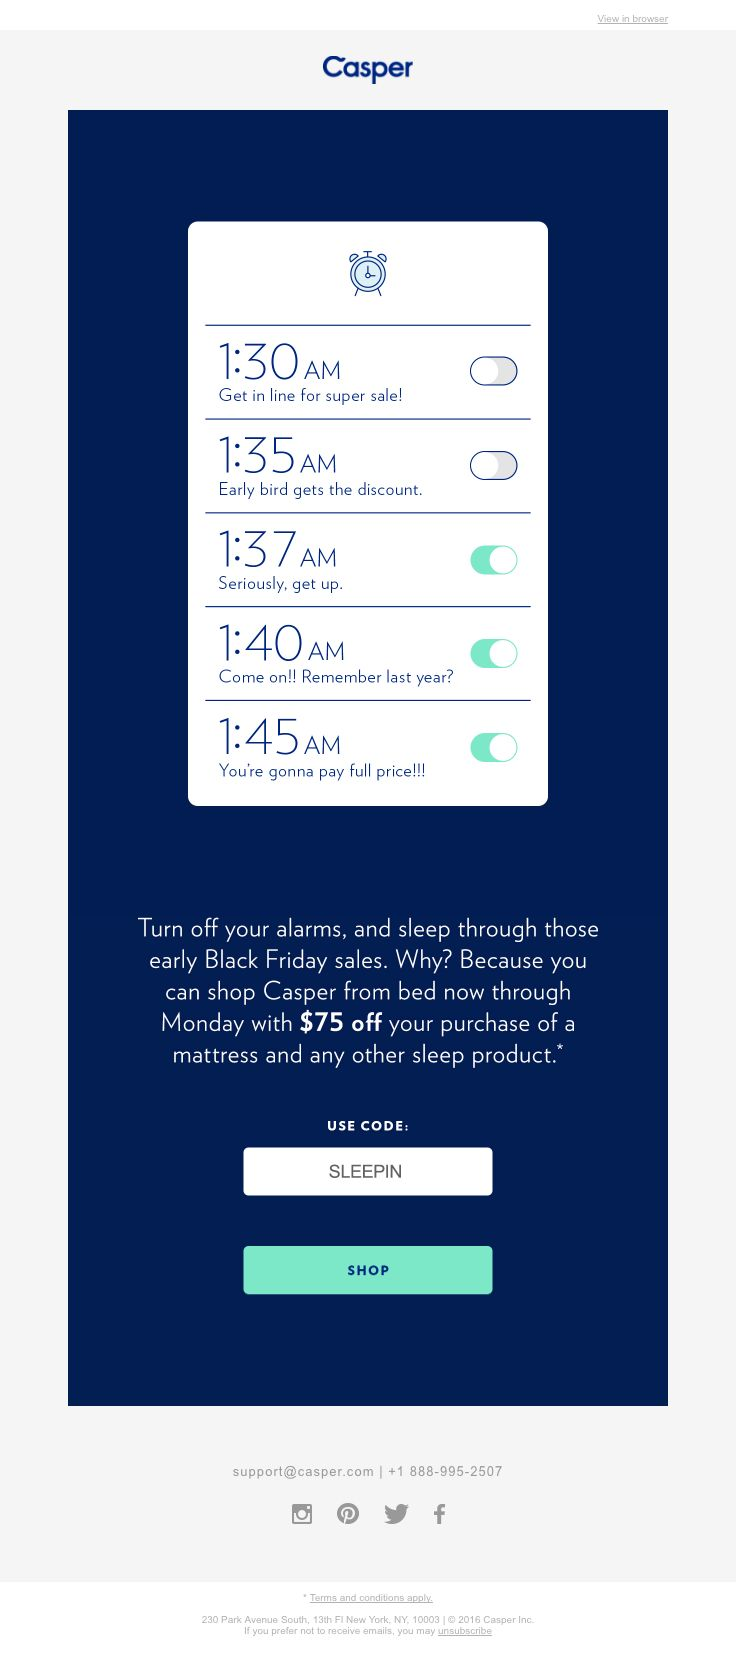 Blue apron unsubscribe mail -  Caspersleep Sent This Email With The Subject Line Snooze Through The Sales